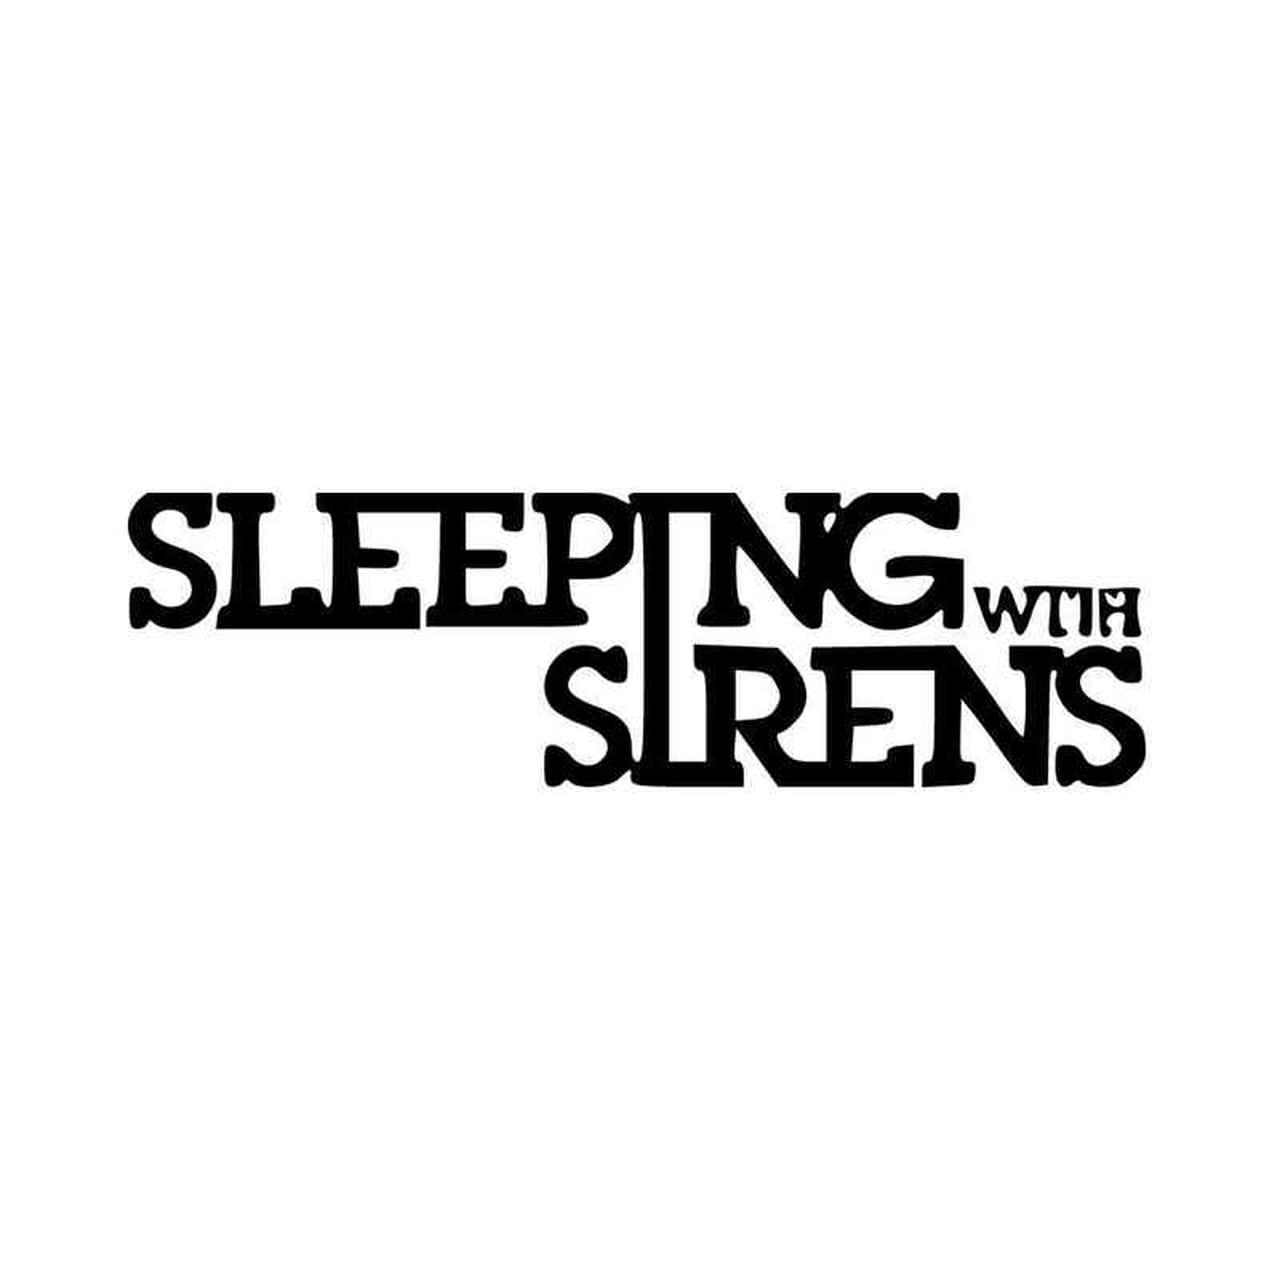 Sleeping With Sirens Band Logo Vinyl Decal Sticker.